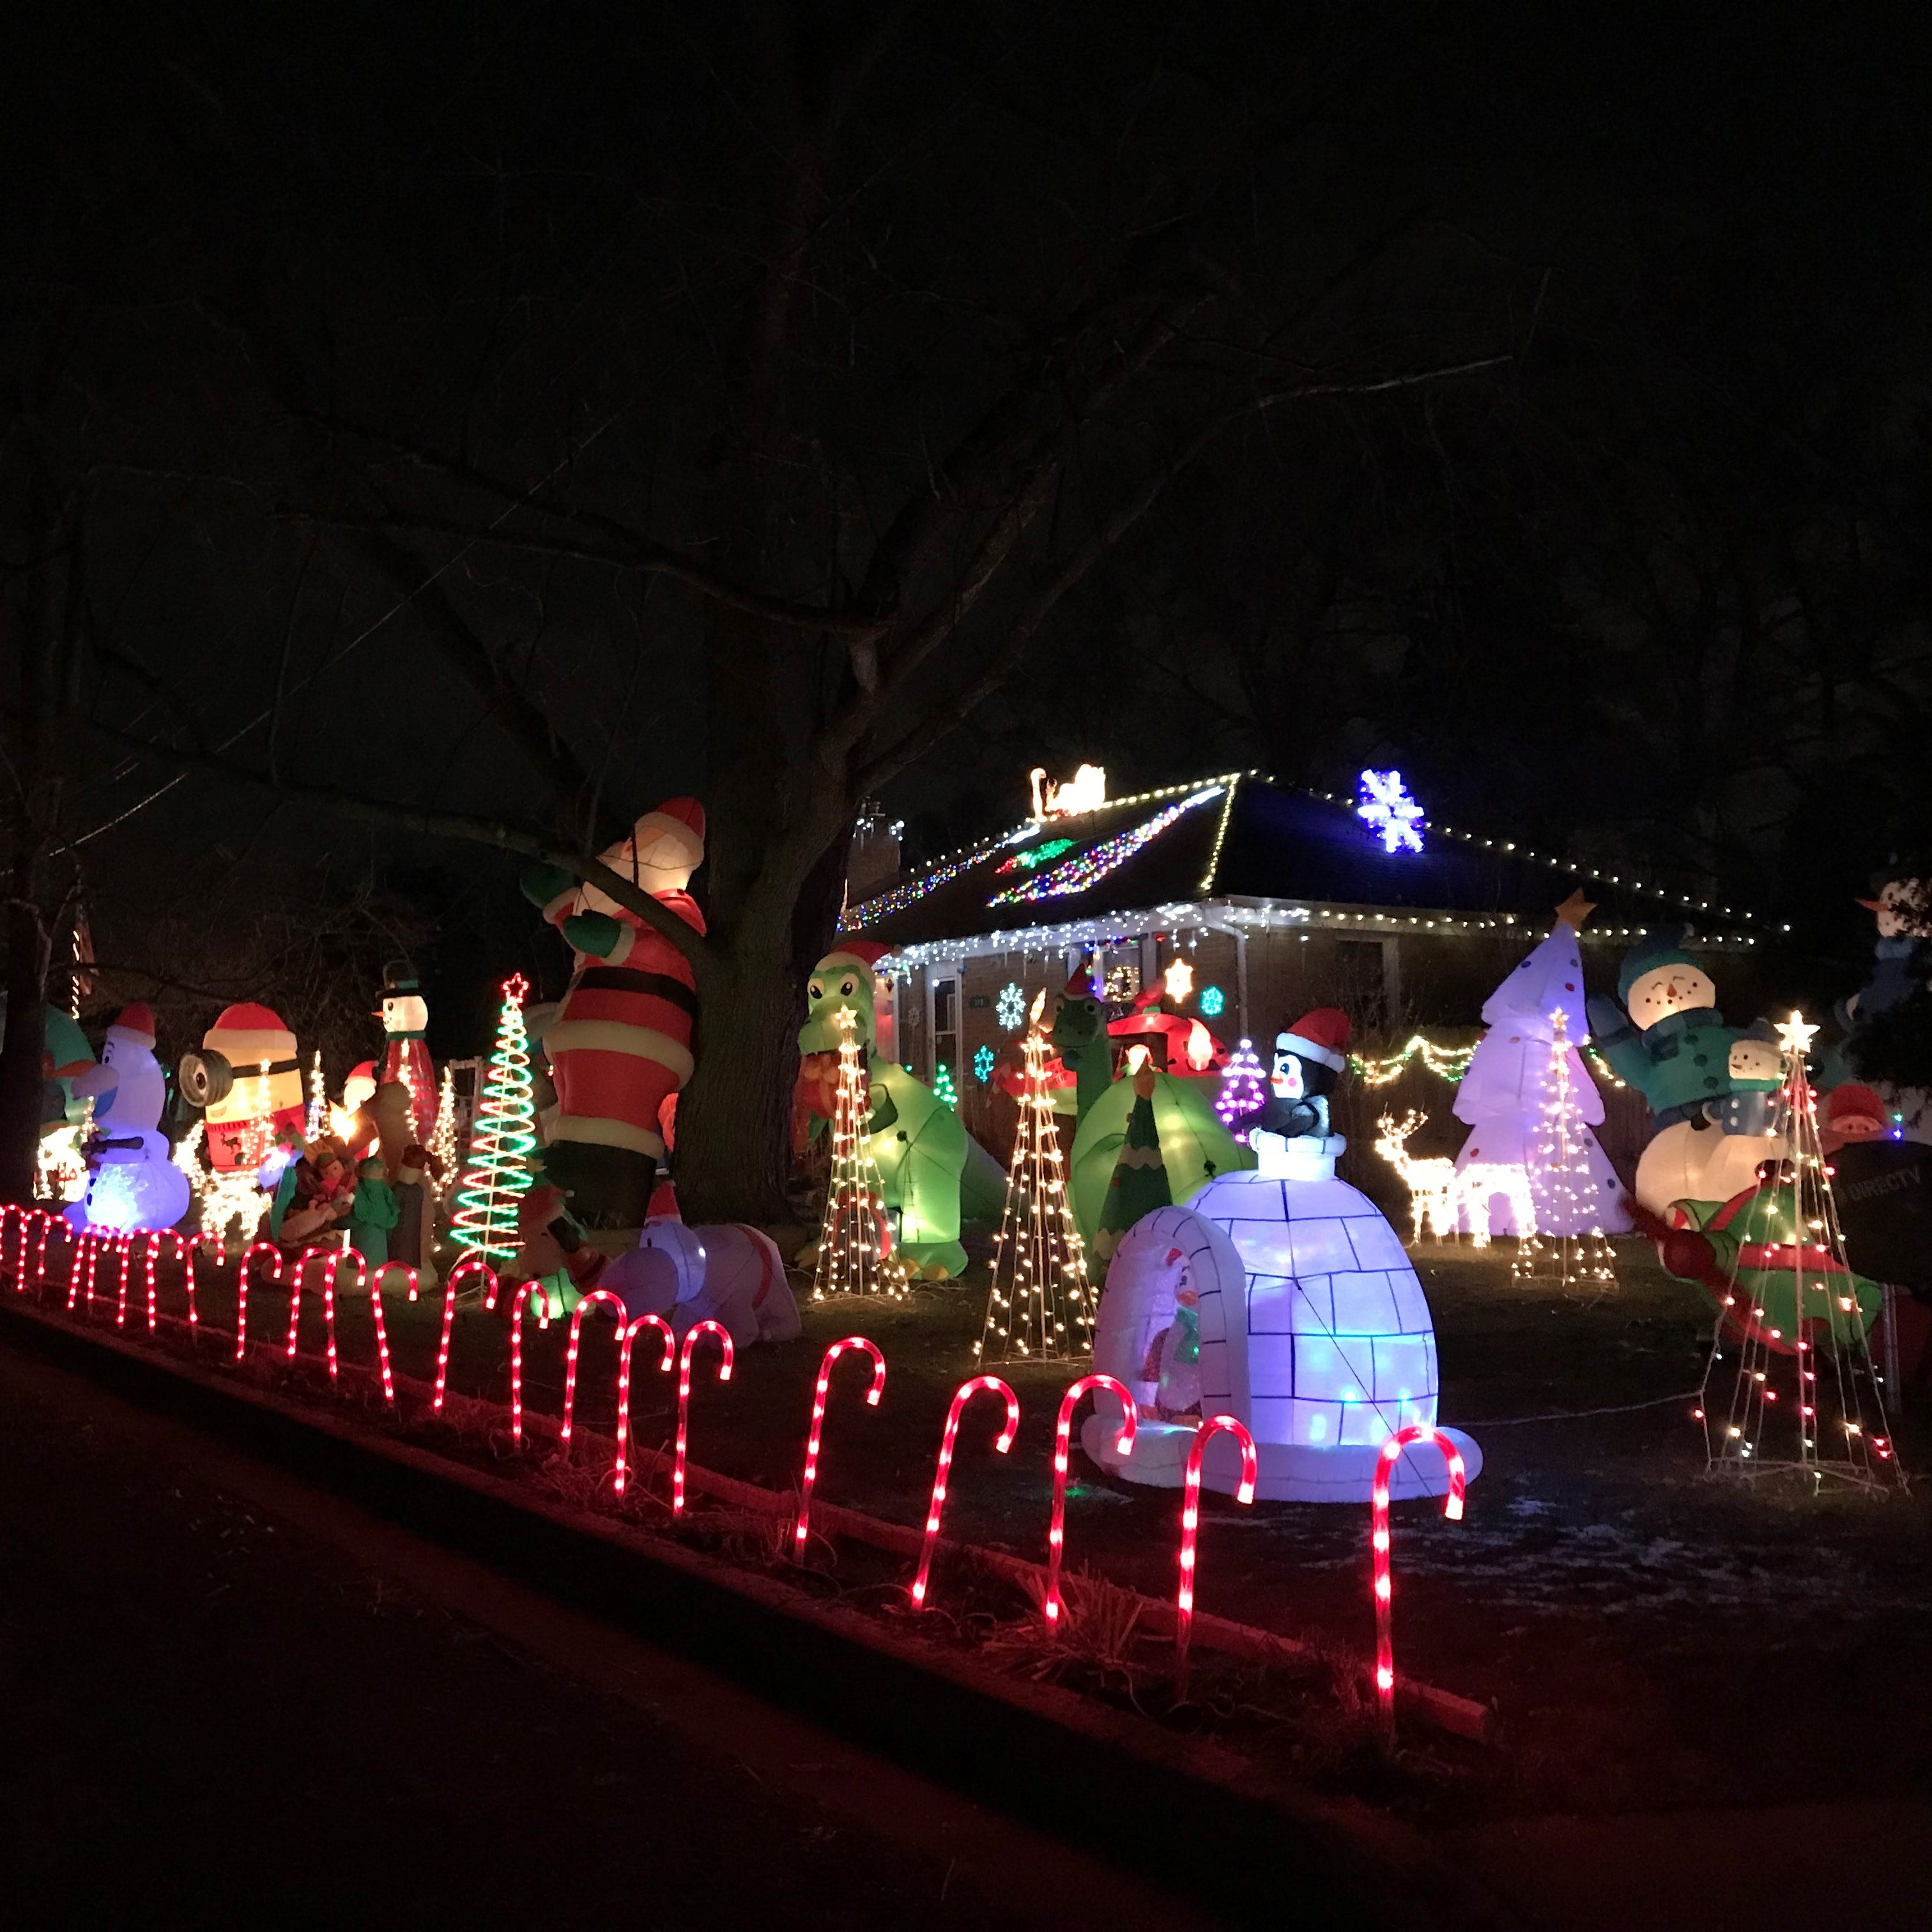 Where the Christmas lights are bright and the inflatables are plentiful